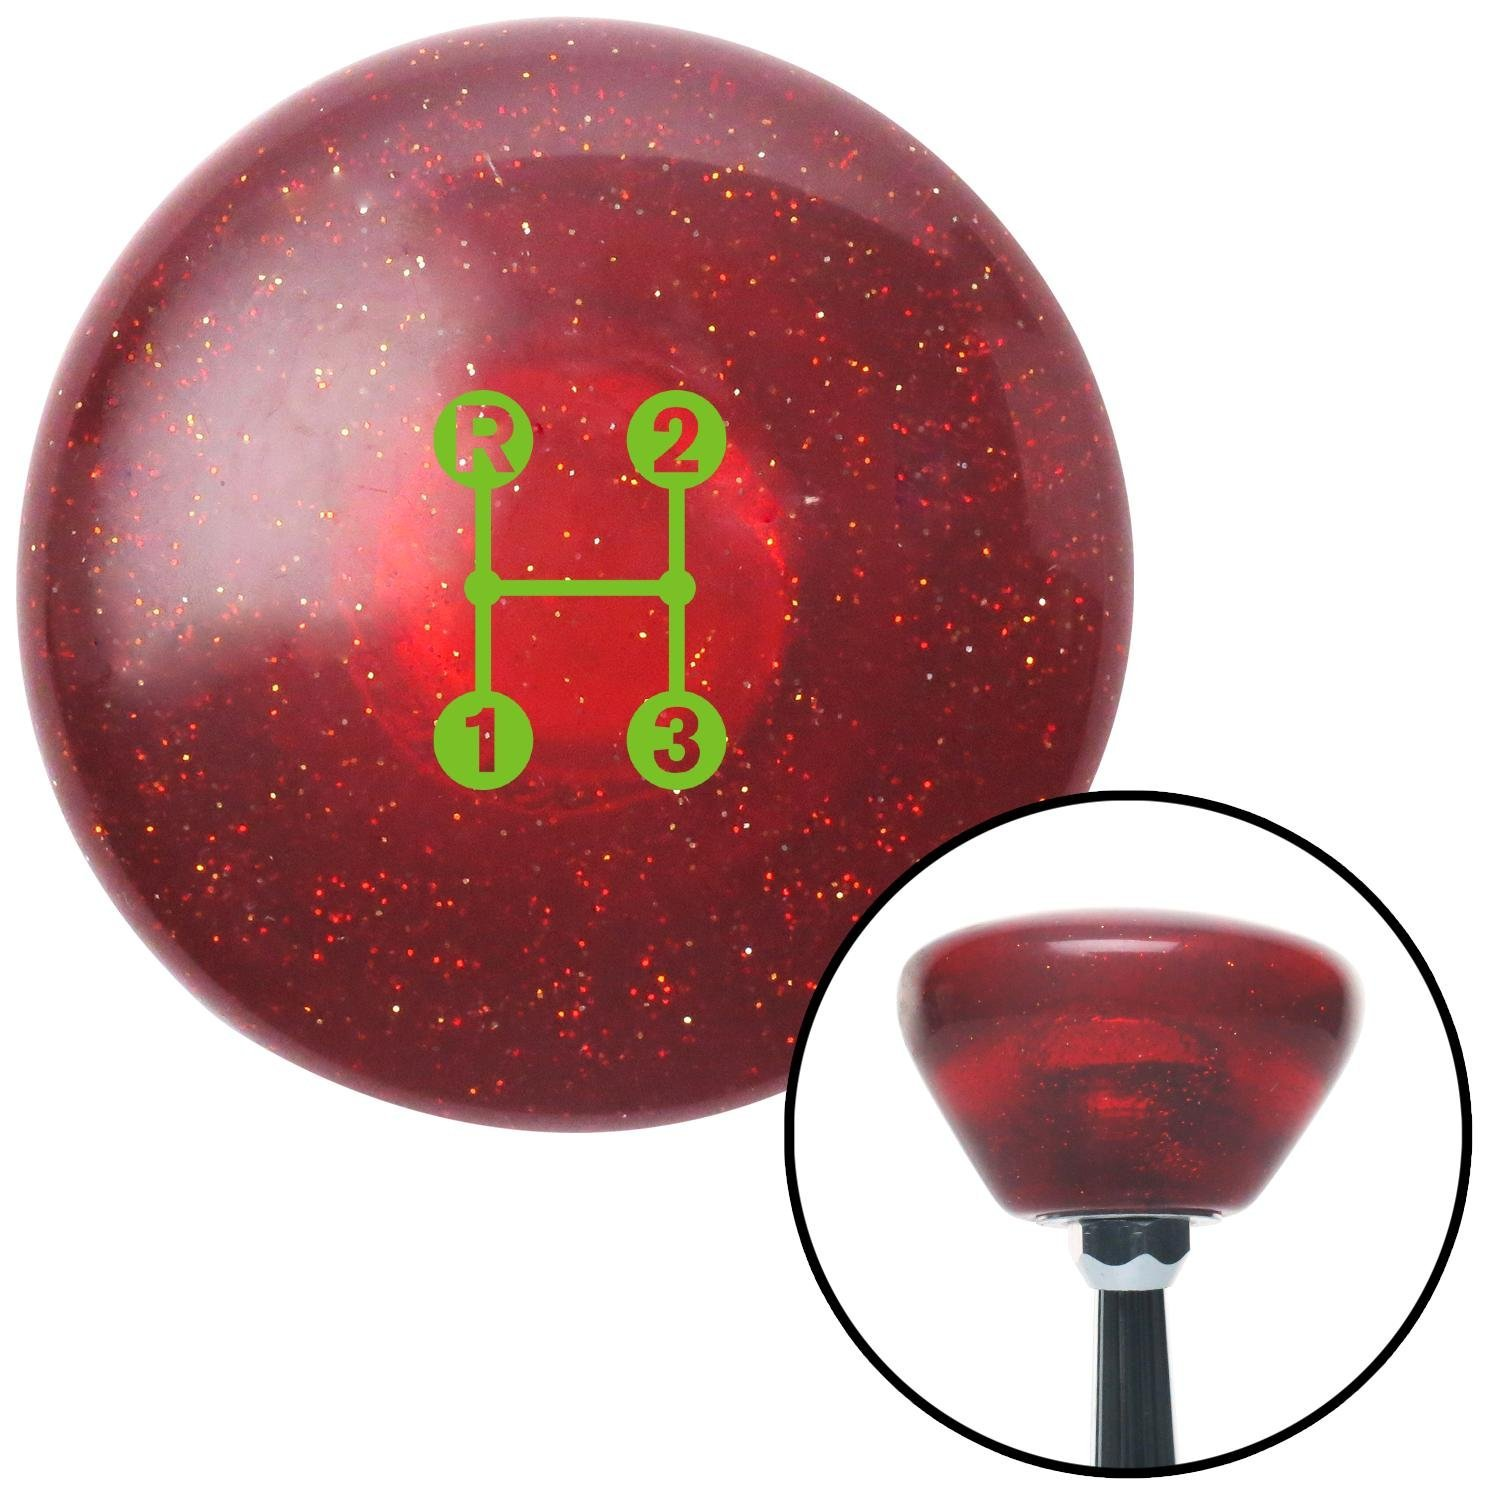 American Shifter 290977 Shift Knob Green 3 Speed Shift Pattern - Dots 11n Red Retro Metal Flake with M16 x 1.5 Insert